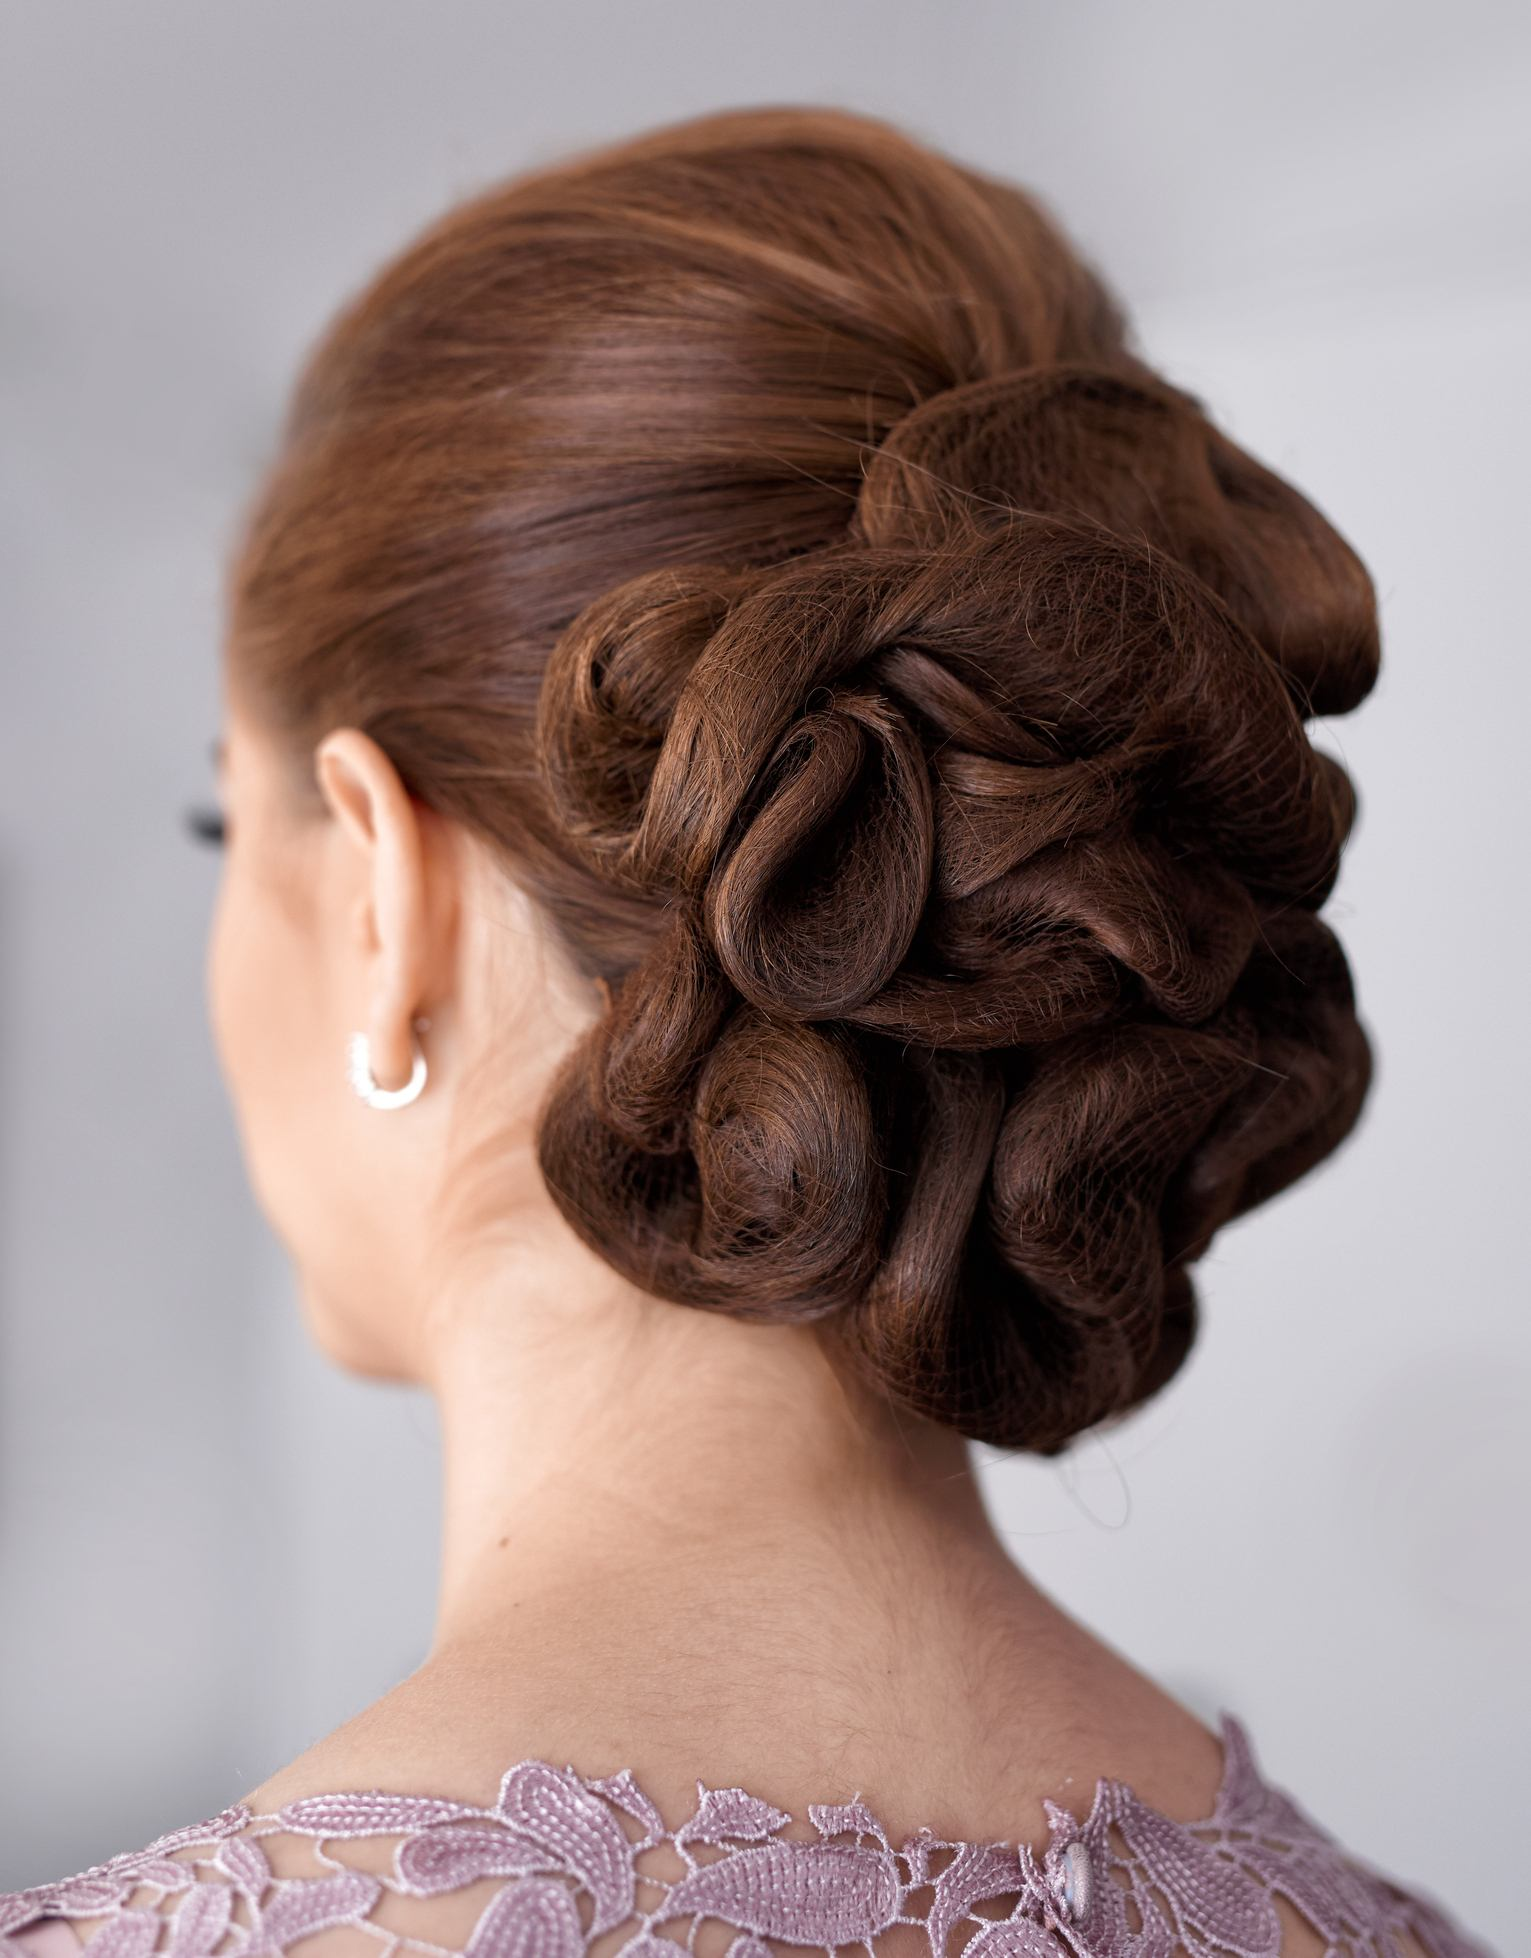 rear view of prom updos with elegant woman with amazing hair bun, hairstyle background.